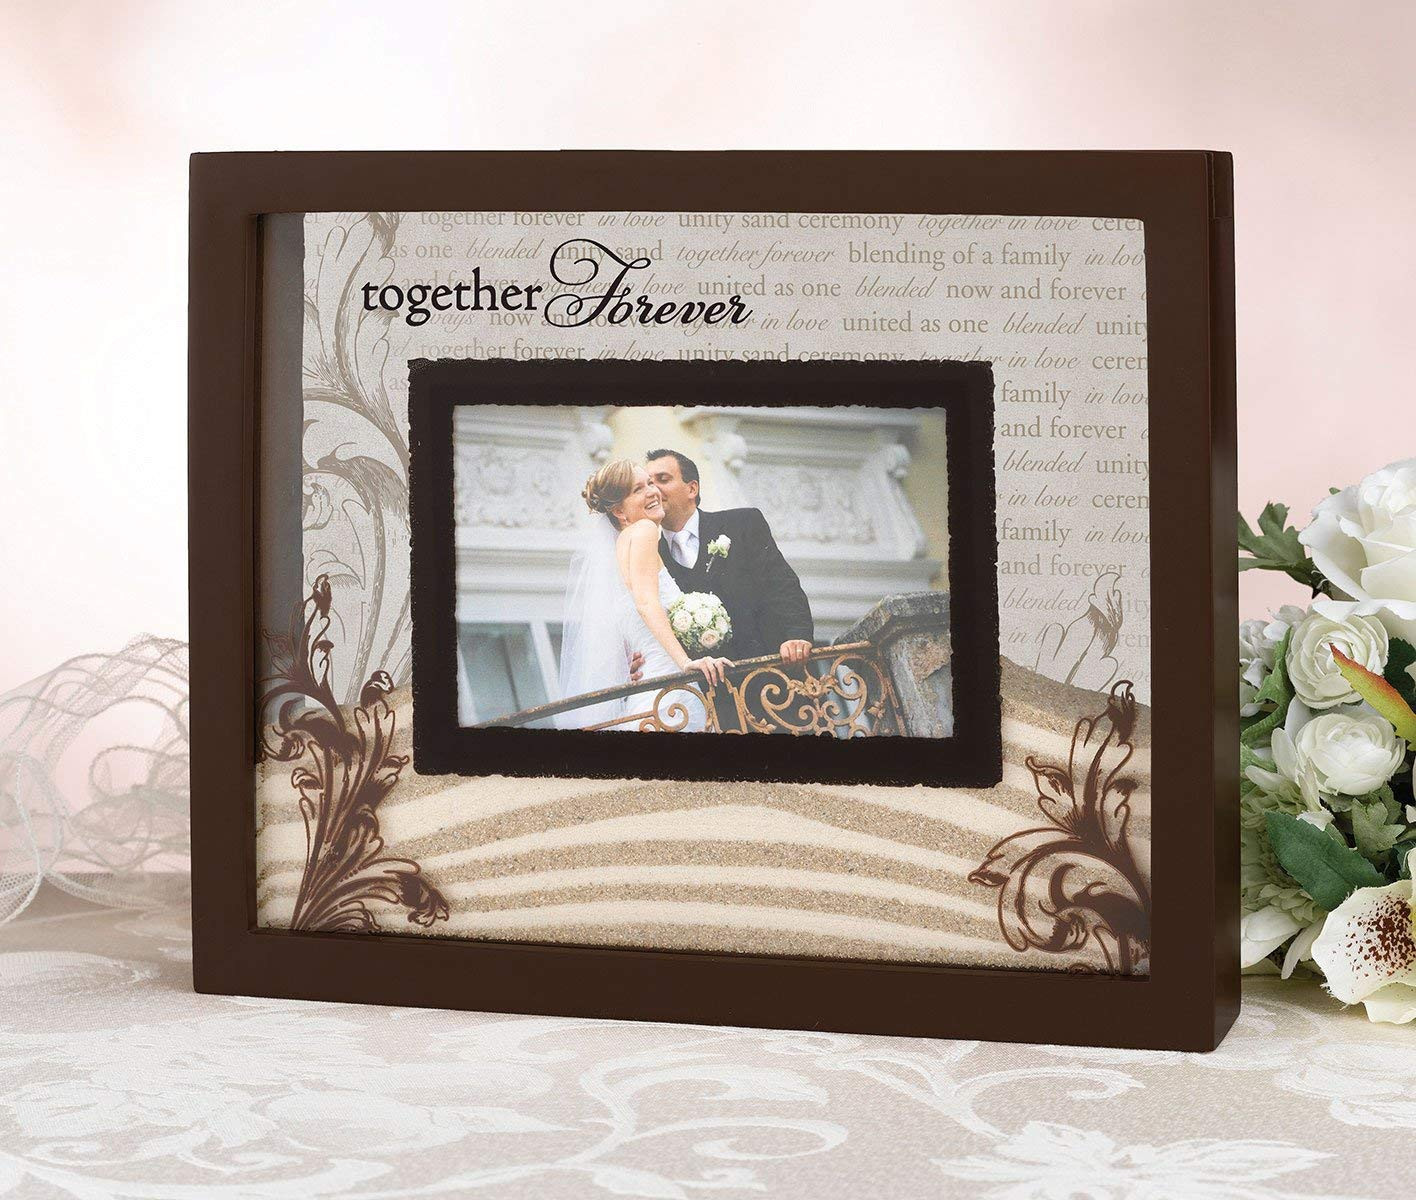 sand vases for wedding ceremony of amazon com lillian rose unity sand ceremony wedding picture frame regarding amazon com lillian rose unity sand ceremony wedding picture frame single frames